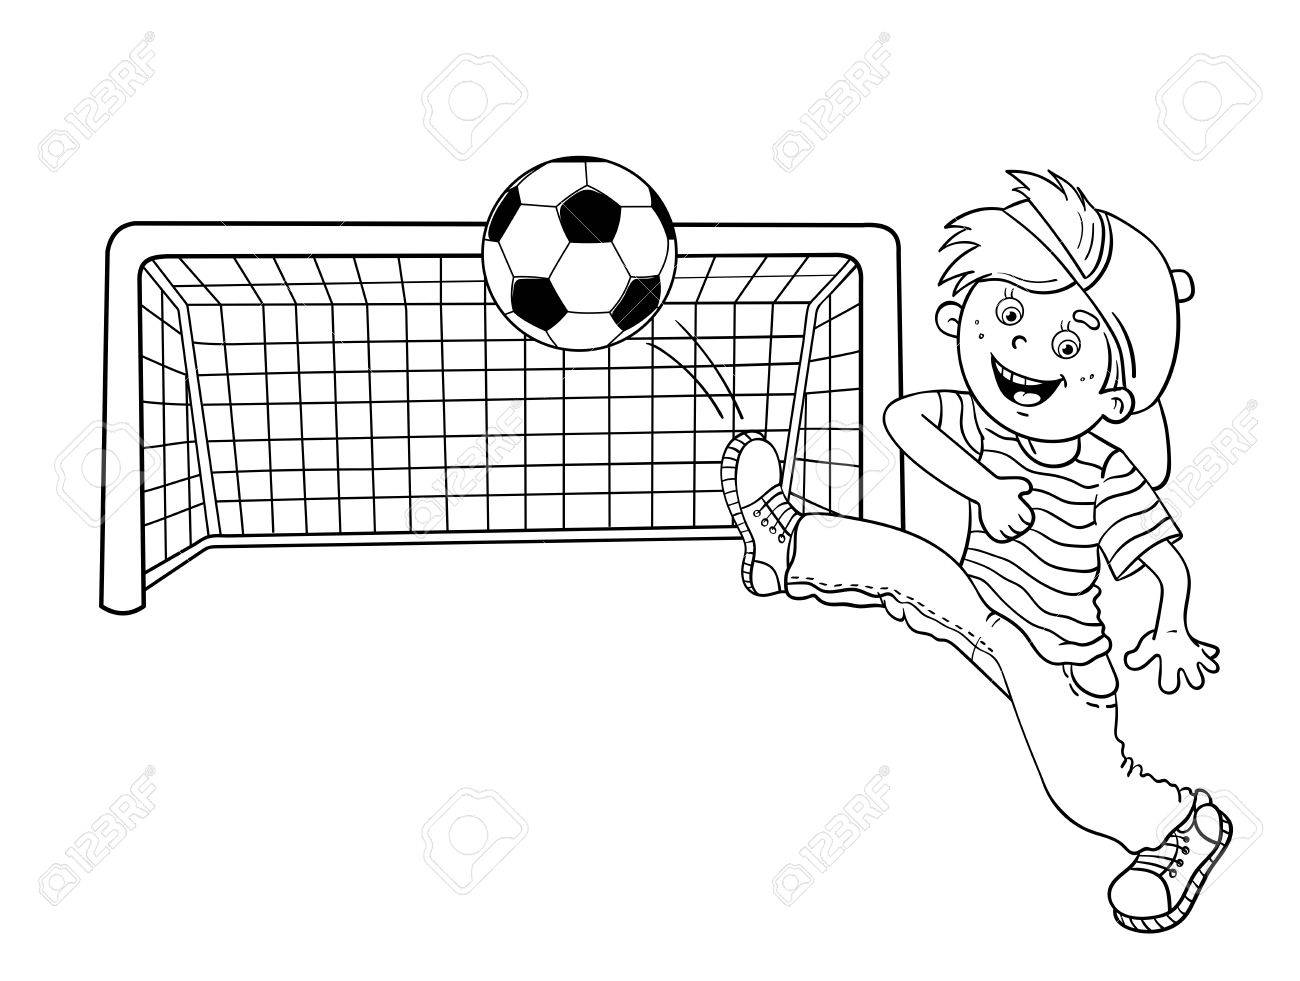 coloring page outline of a cartoon boy kicking a soccer ball stock vector 46661642